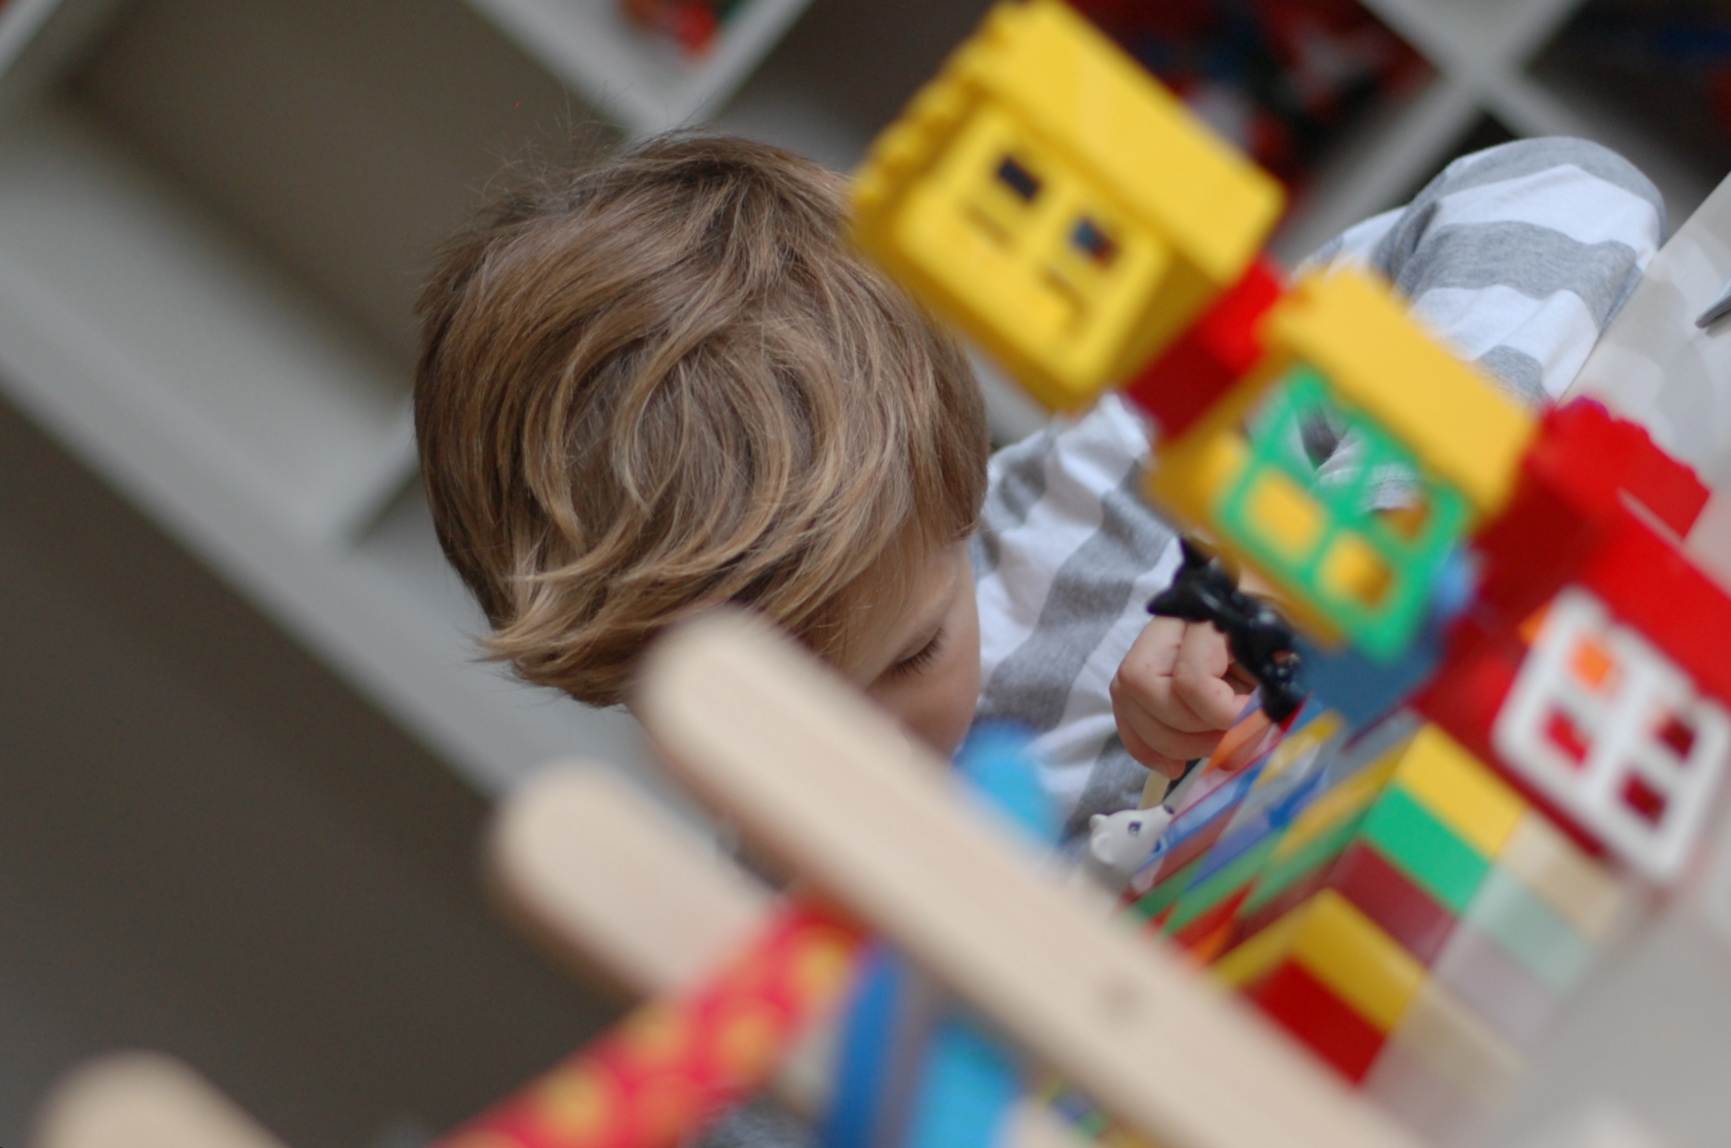 learning through play with lego duplo | #legoduploplay